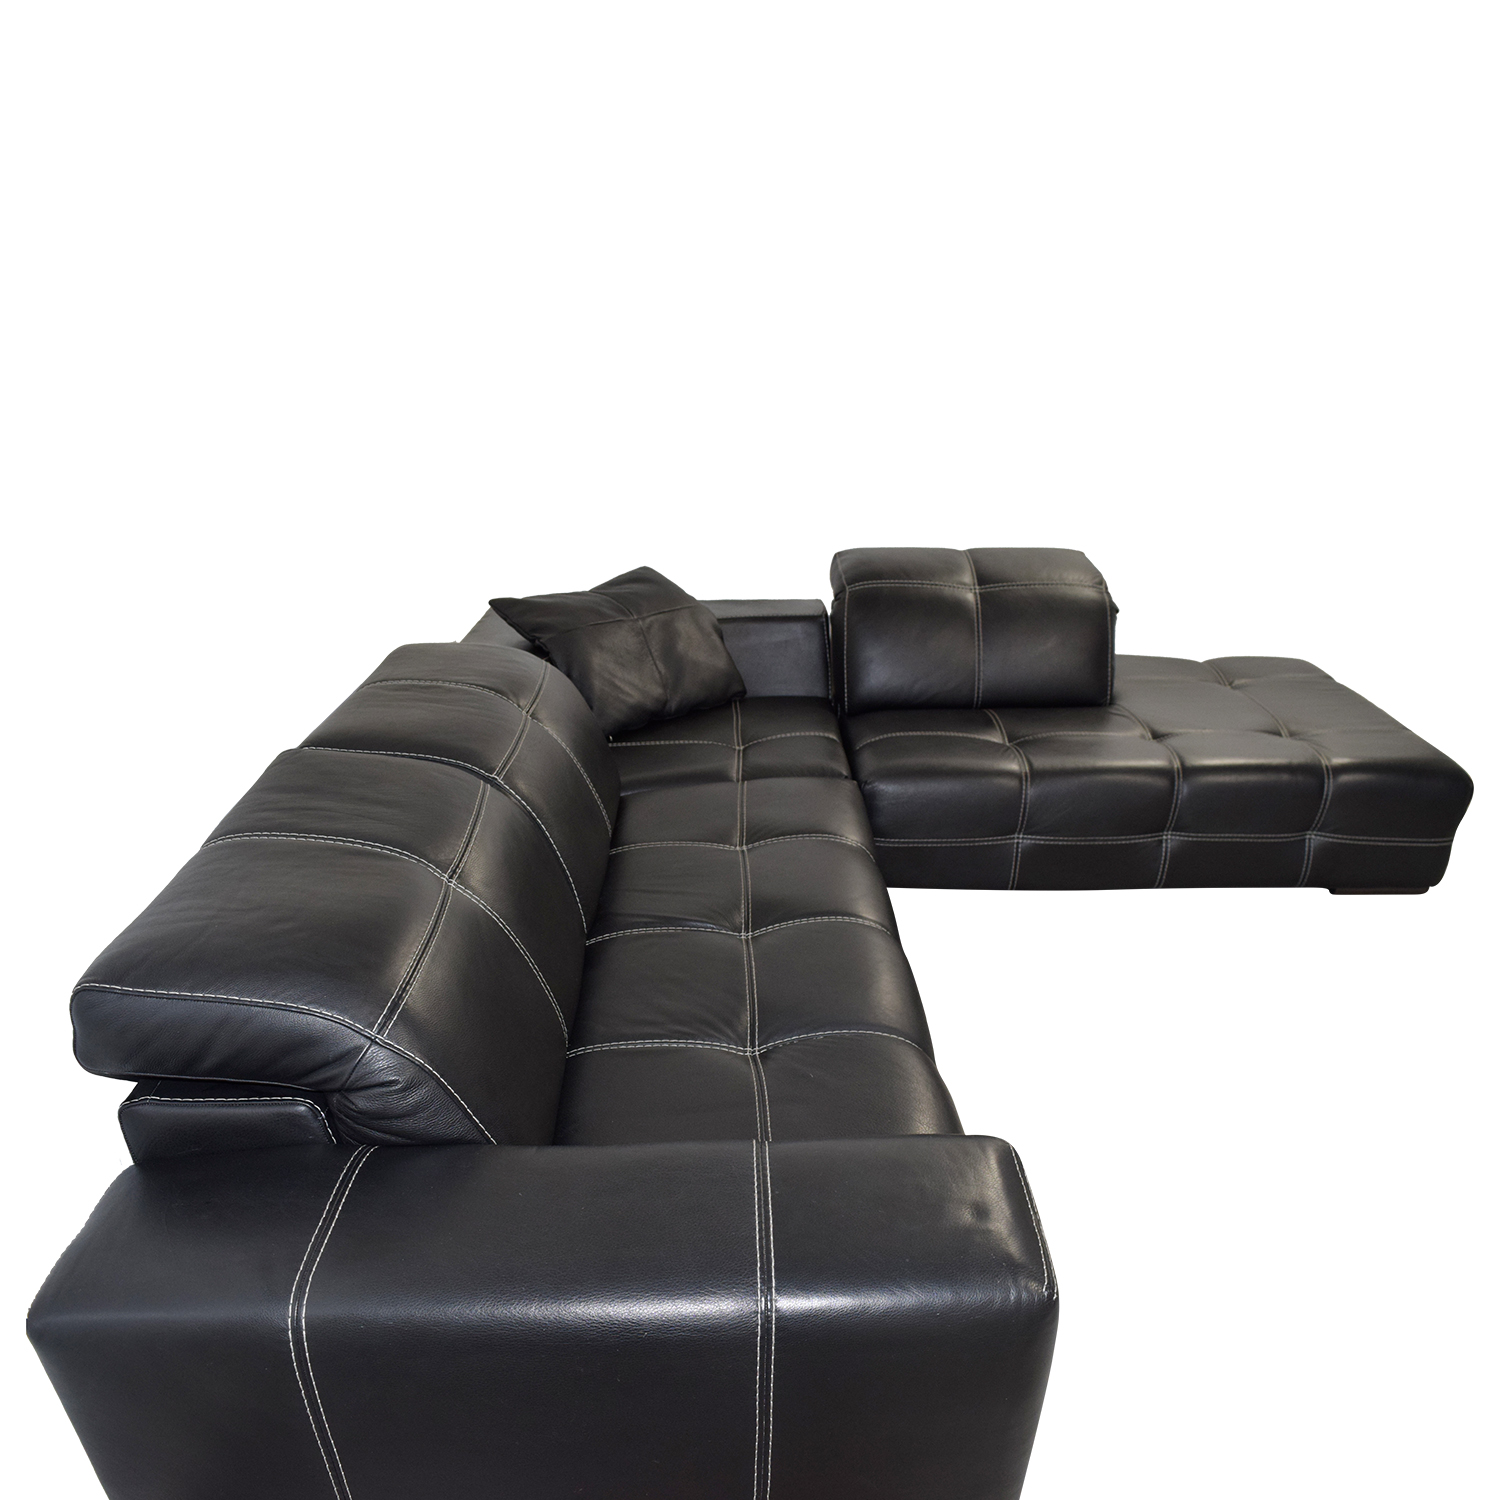 85% OFF - Natuzzi Natuzzi Black Italian Leather L-Shaped Sectional / Sofas